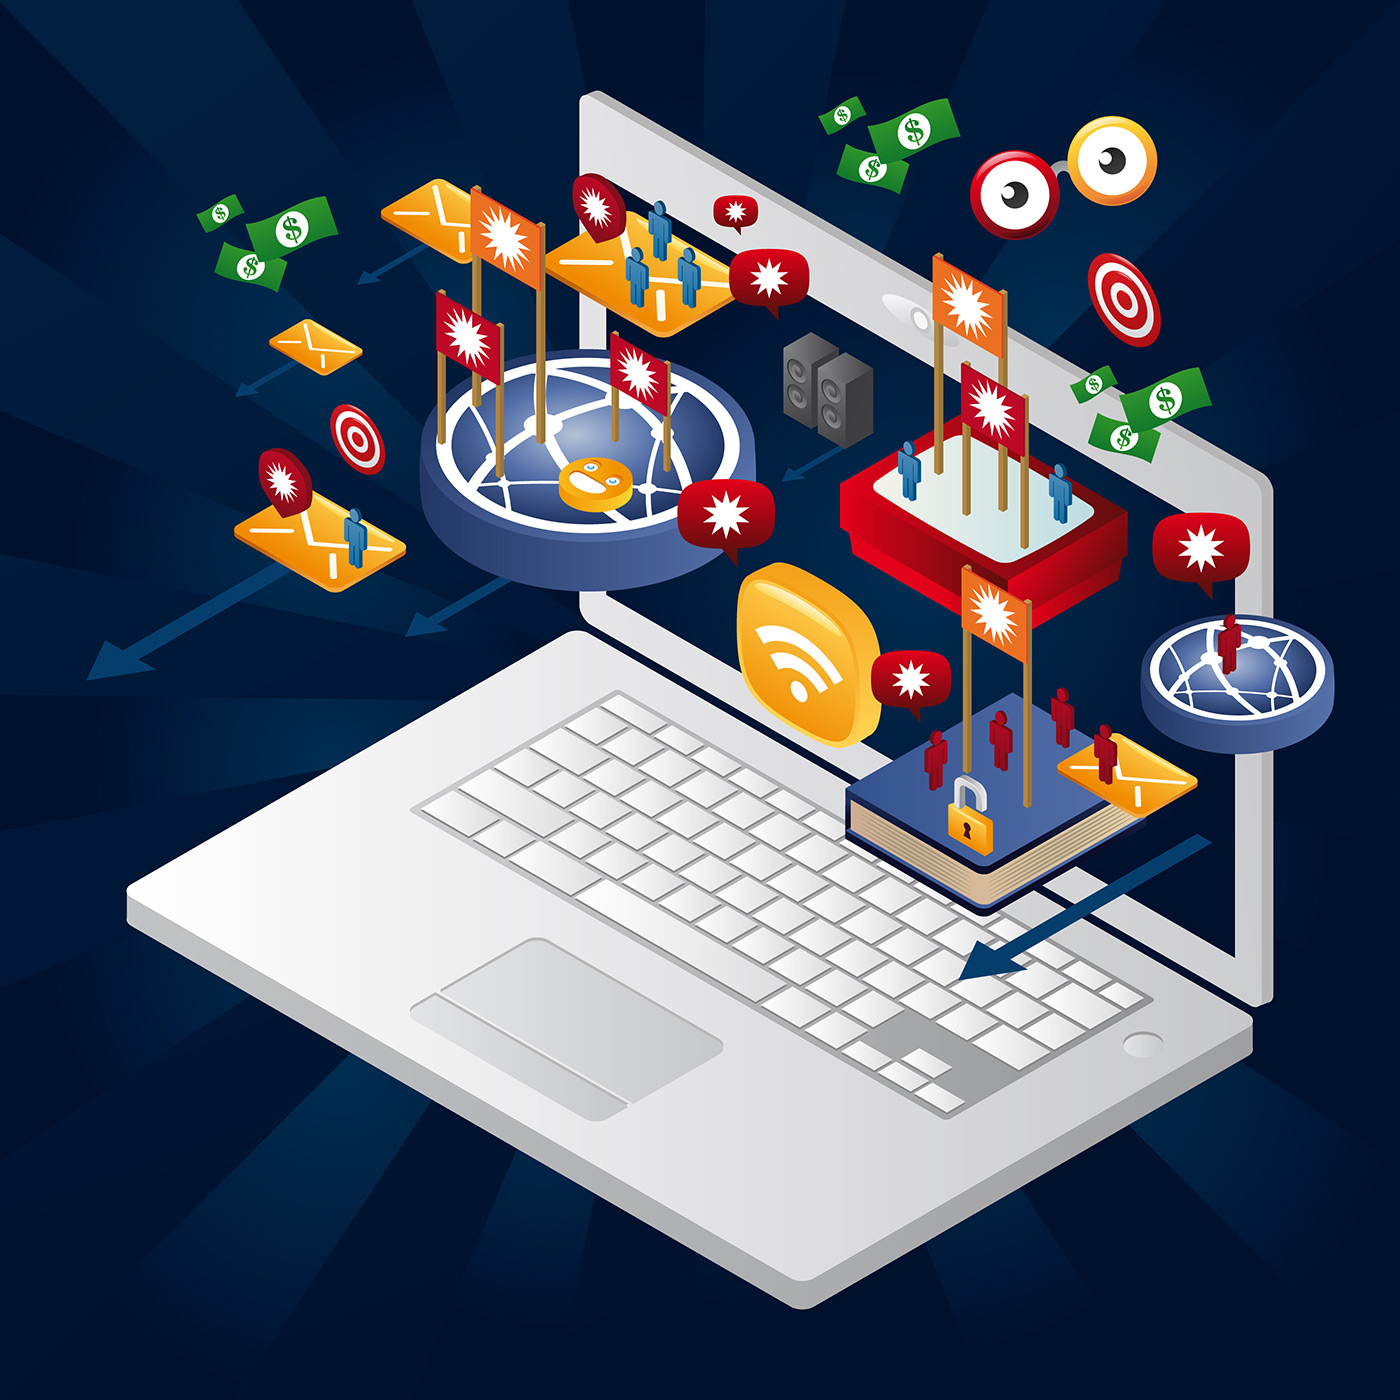 social internet and finance Search the world's information, including webpages, images, videos and more google has many special features to help you find exactly what you're looking for.